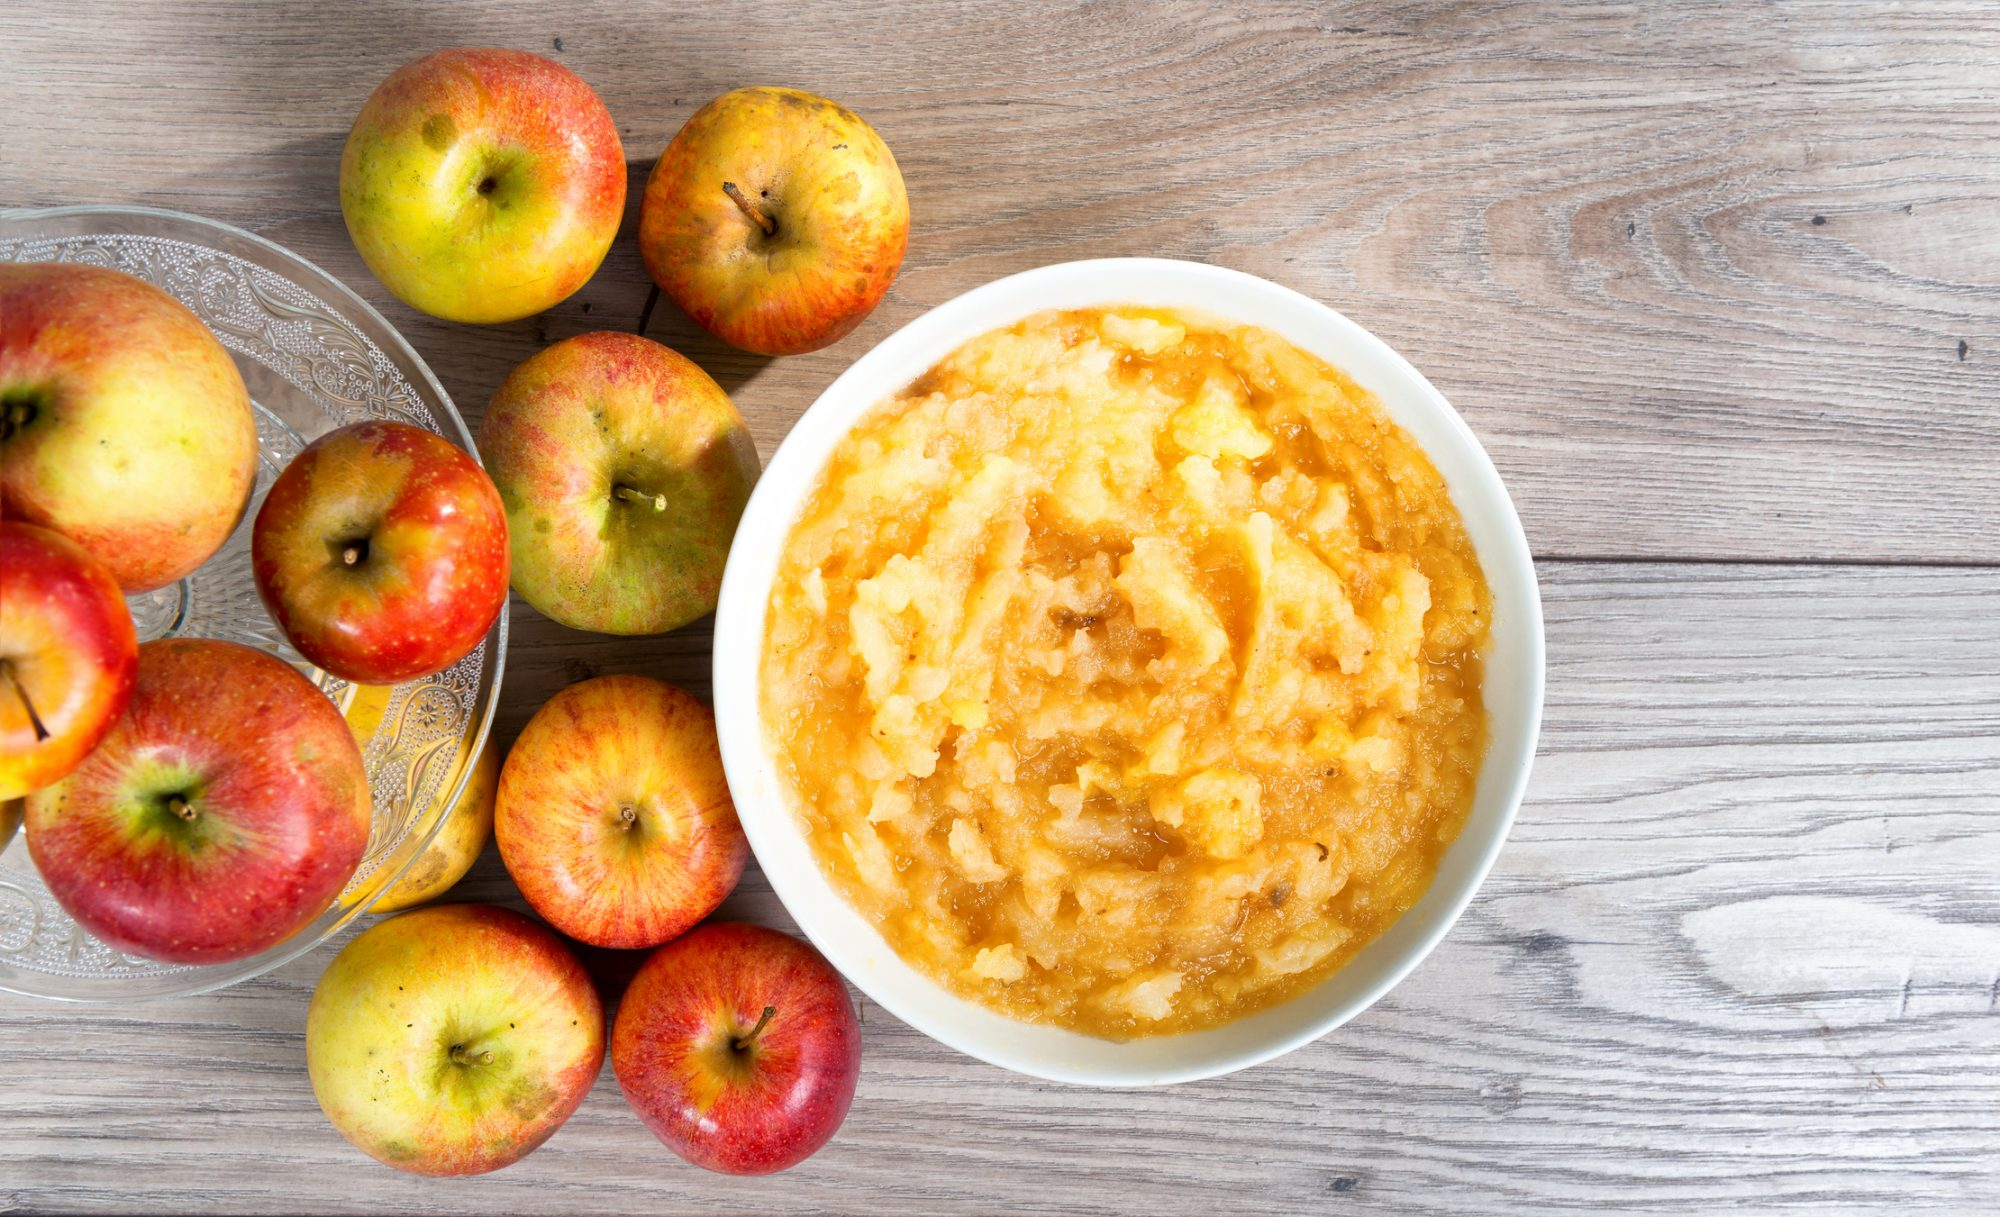 The Easiest Way to Make Applesauce at Home